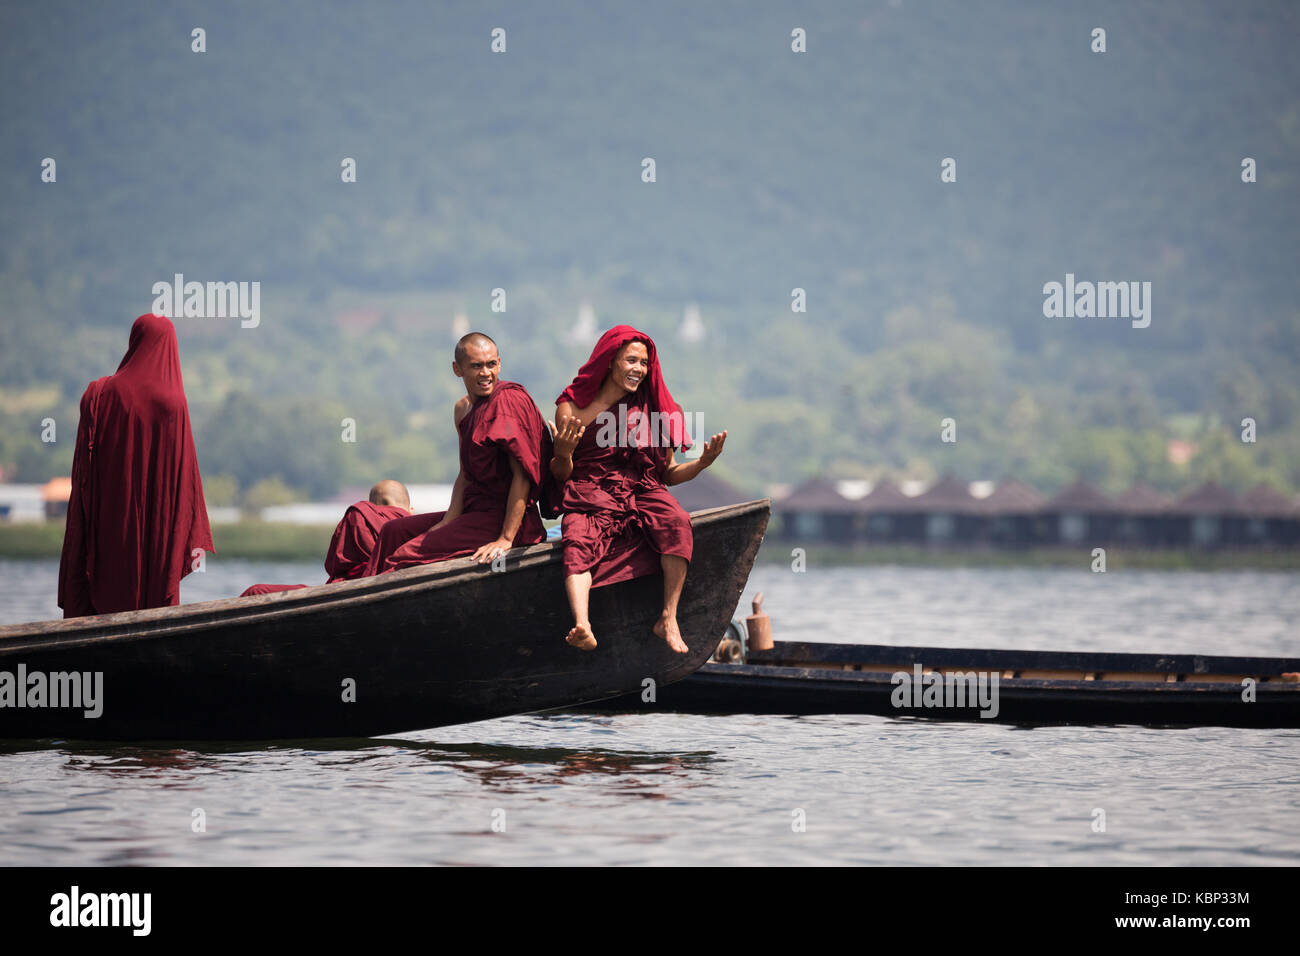 Asia, Myanmar, Shen State, Inle Lake, Boat race competition during Phaung Daw Oo Pagoda Festival, Inn Kaung Village, - Stock Image